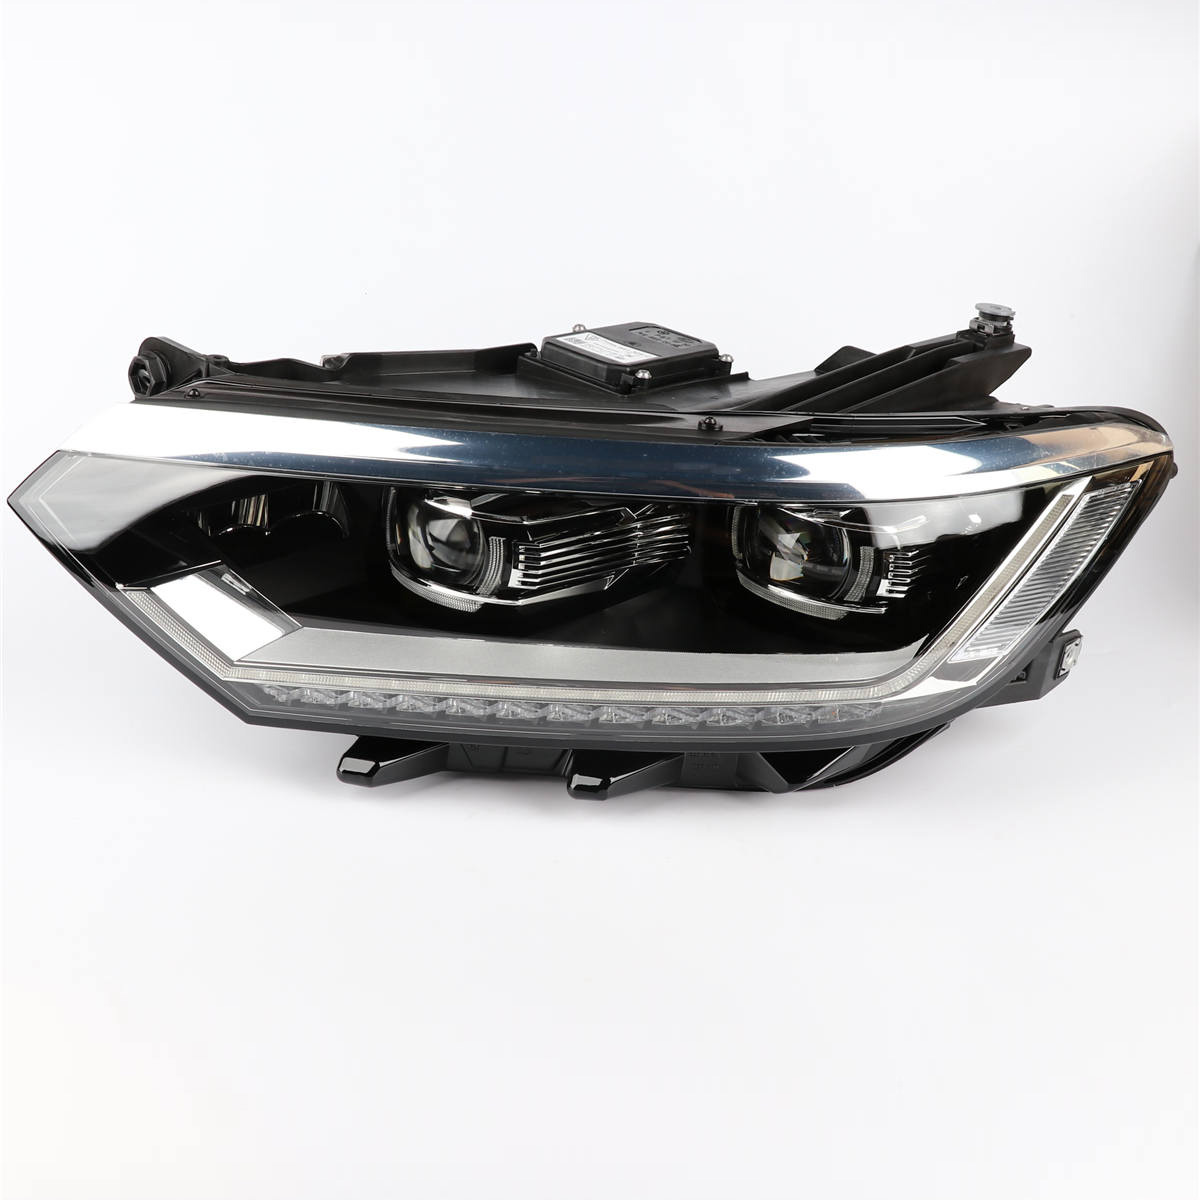 1Pcs Left OEM Genuine Front Headlight Head Light Lamp Assembly with Warranty For VW Passat B8 L3GD 941 081 2pcs oem left